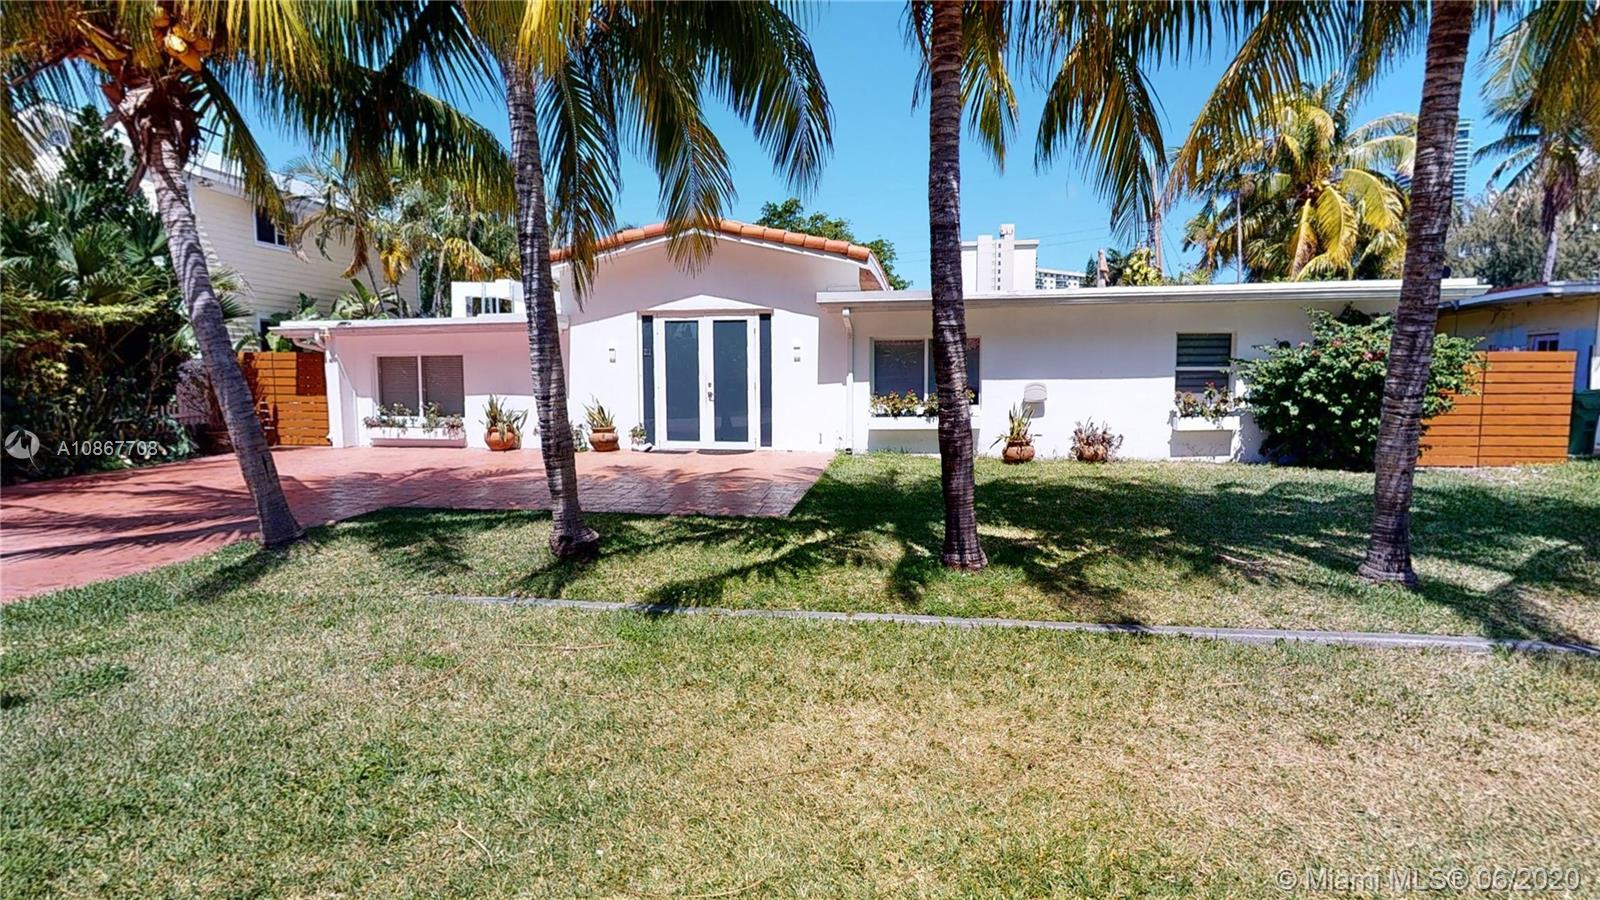 Details for 211 190th St, Sunny Isles Beach, FL 33160